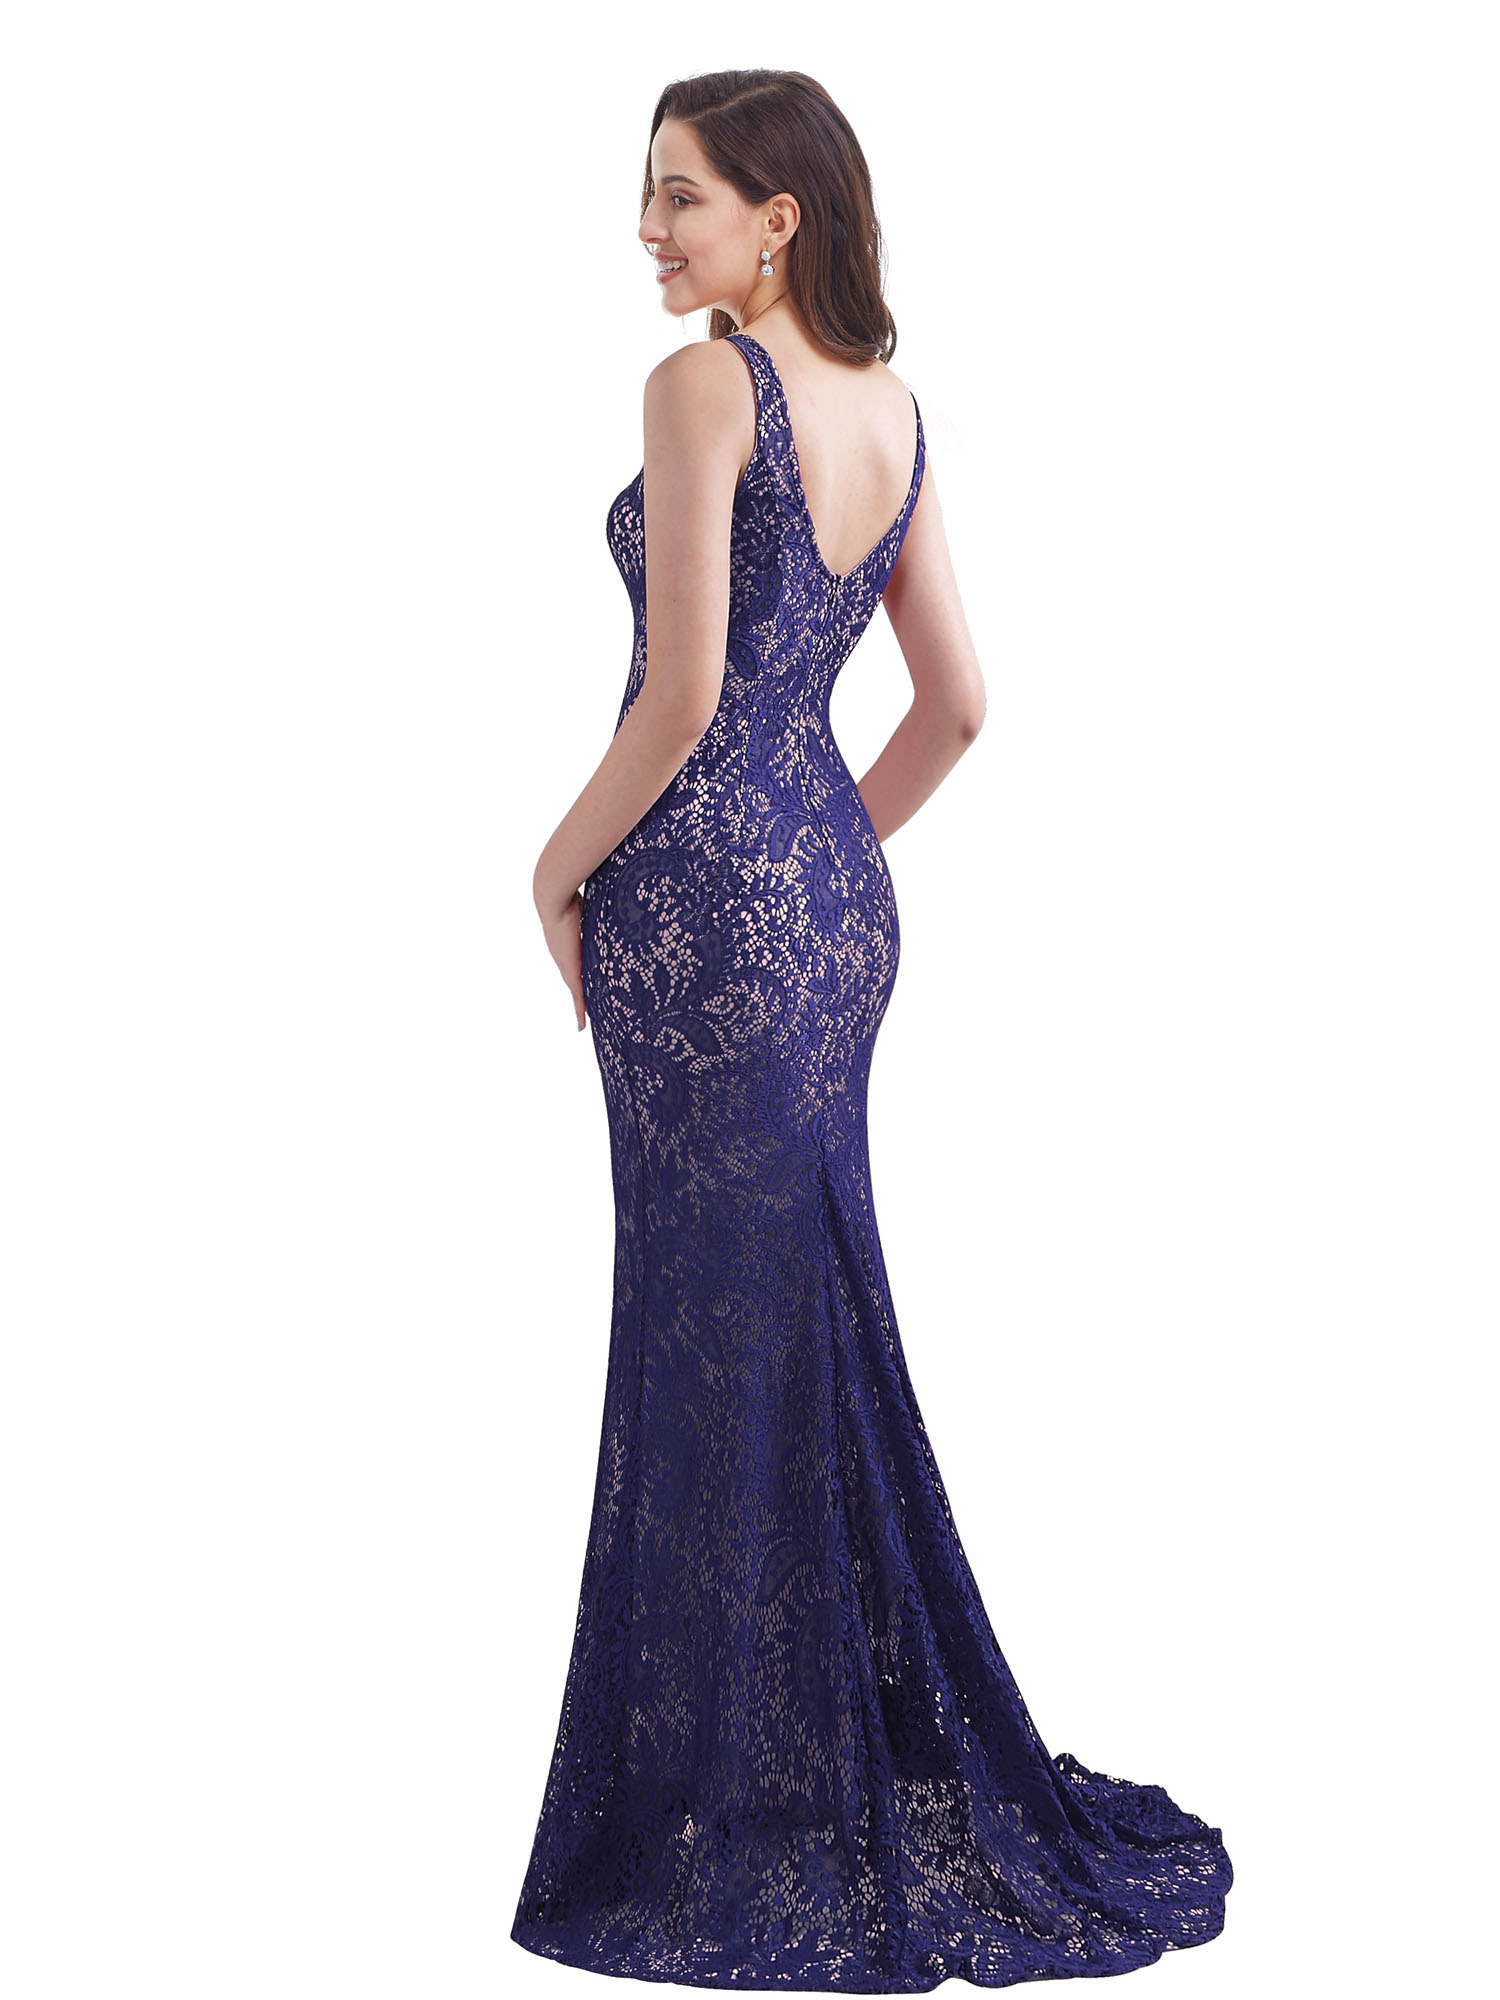 Ever-Pretty-Sleeveless-Long-Formal-Evening-Dresses-Lace-Party-Prom-Dress-08859 thumbnail 5